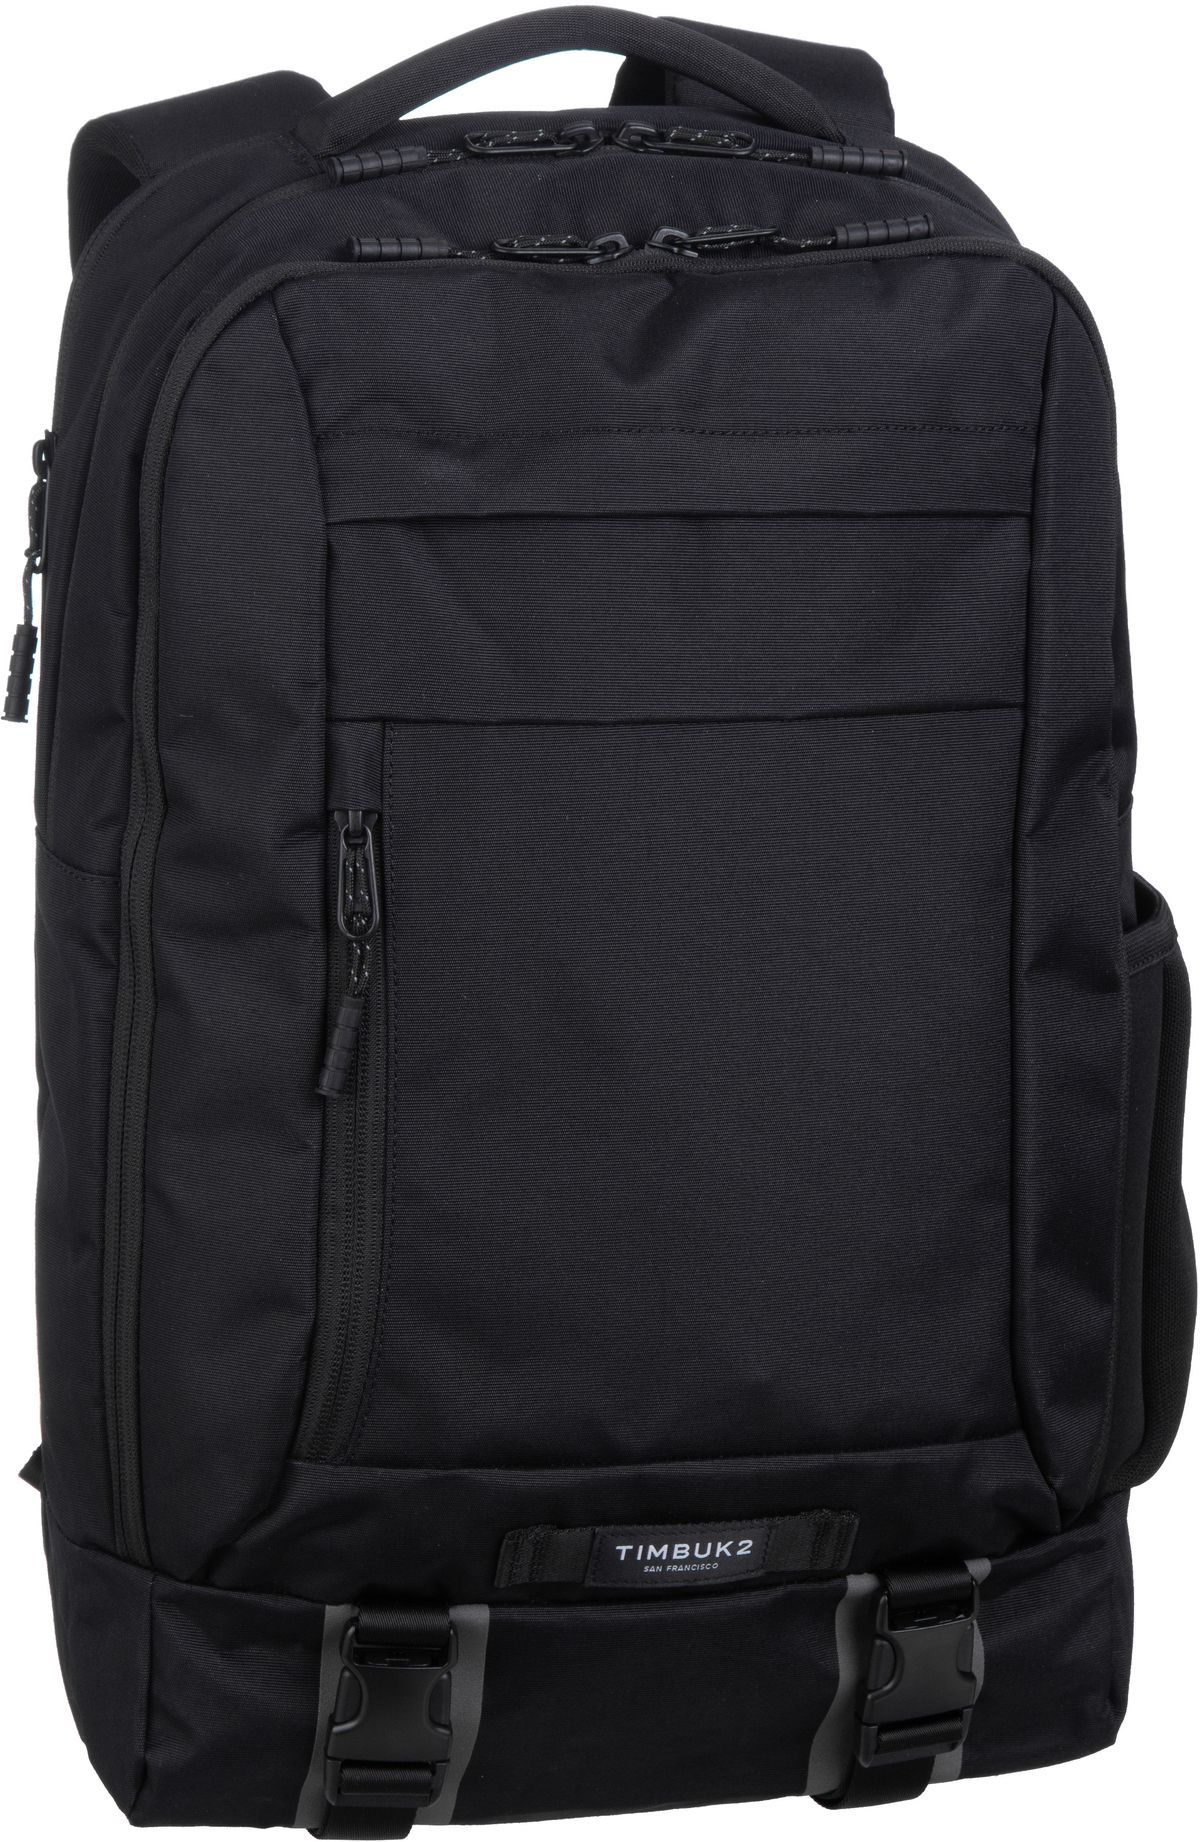 Laptoprucksack The Authority Pack Typeset (28 Liter)